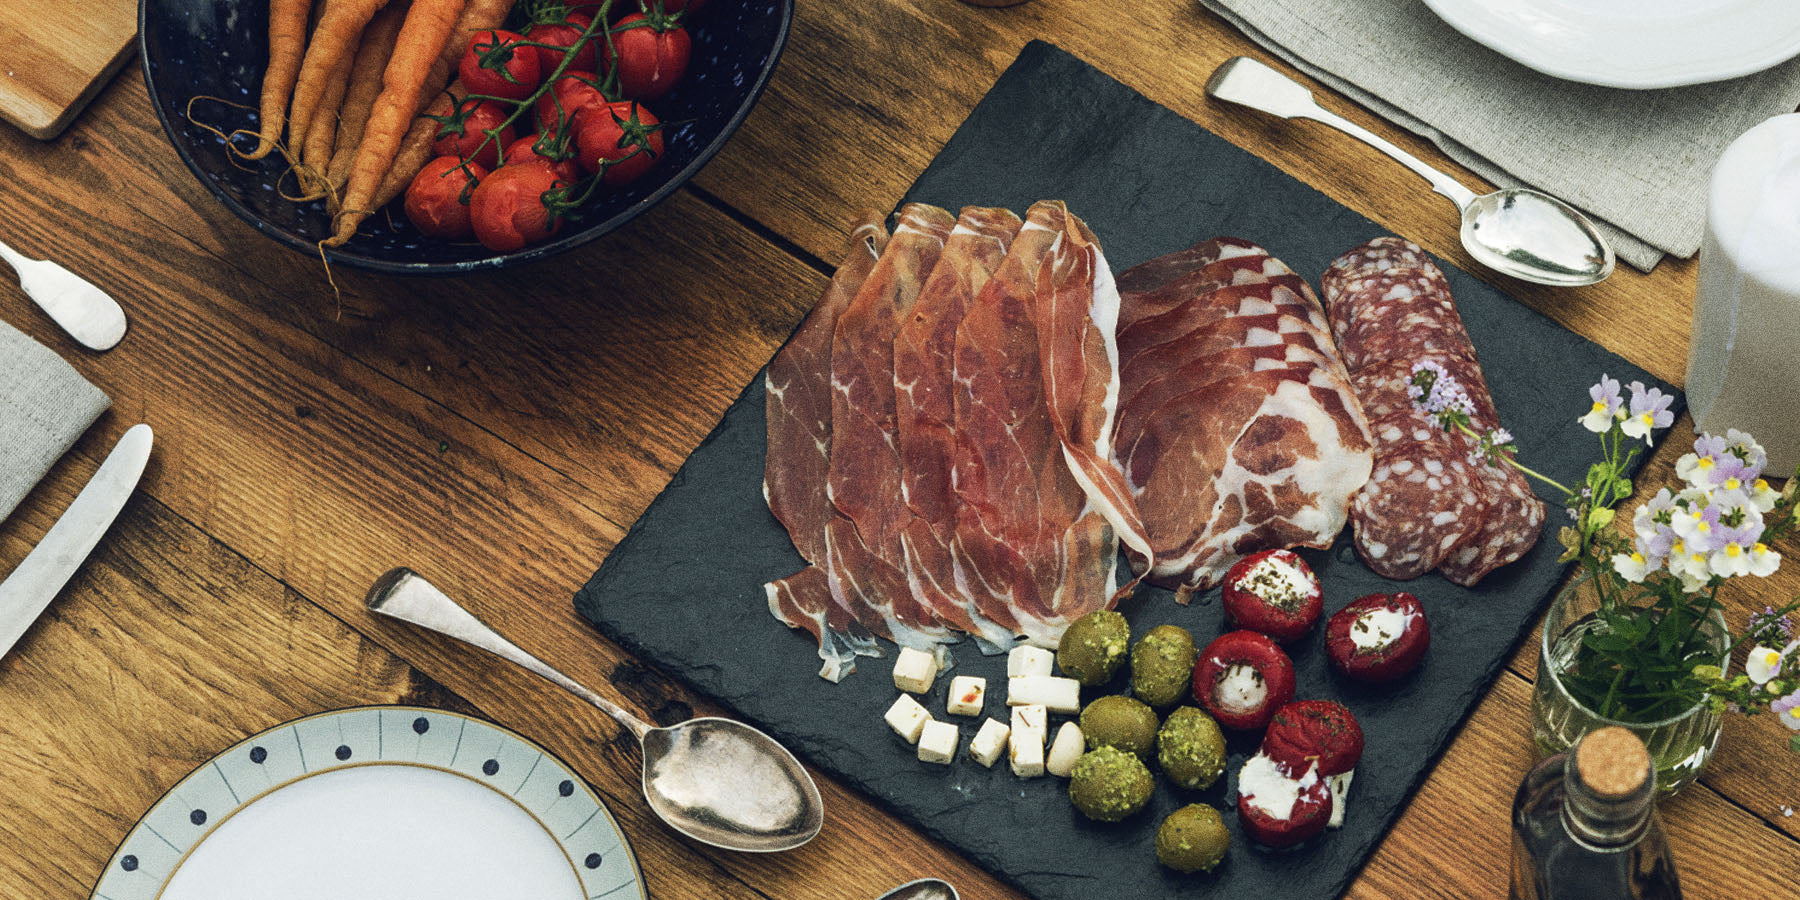 Cold Cuts on a wooden board